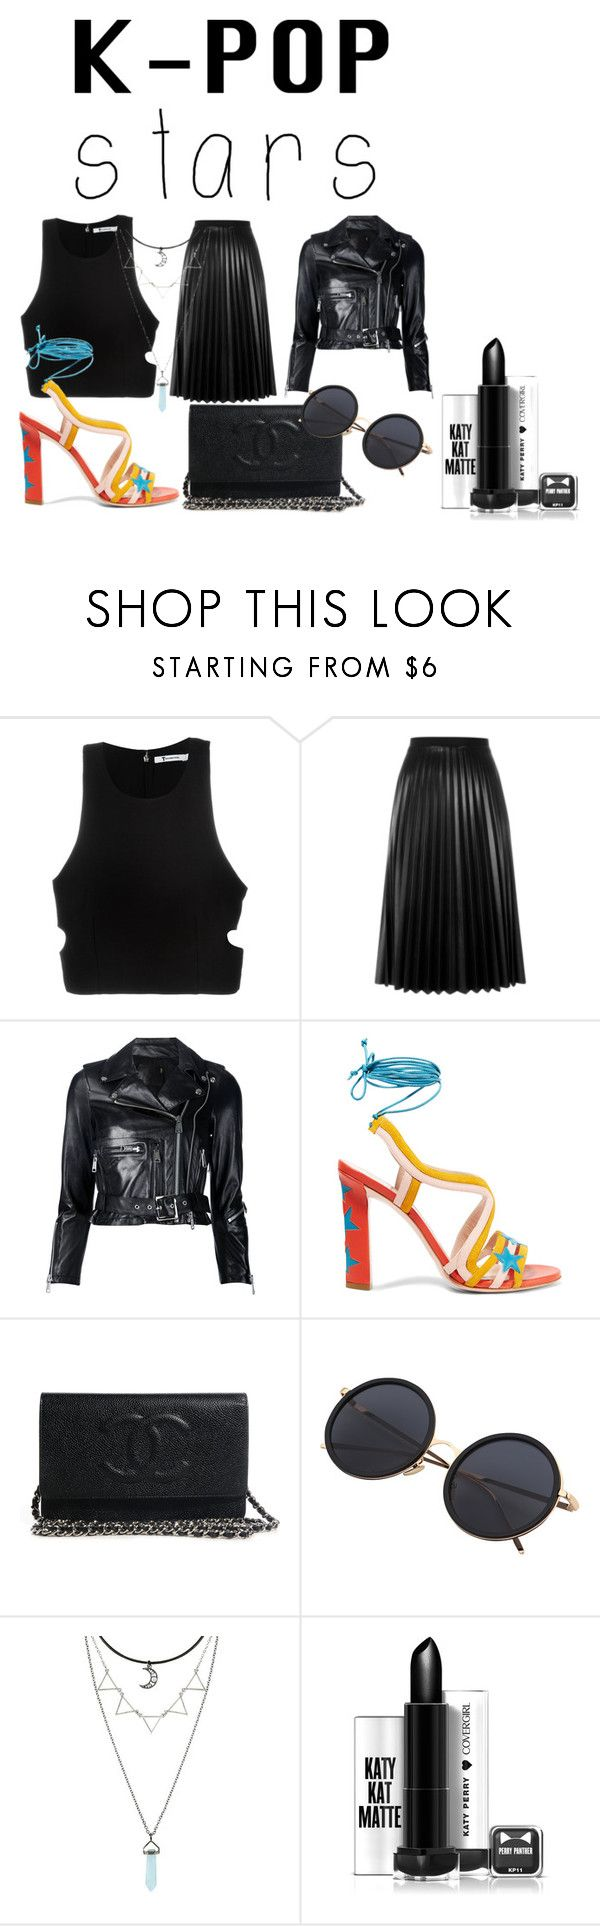 """K - pop Stars"" by lola44442 ❤ liked on Polyvore featuring T By Alexander Wang, Aviù, R13, Paula Cademartori and kpop"